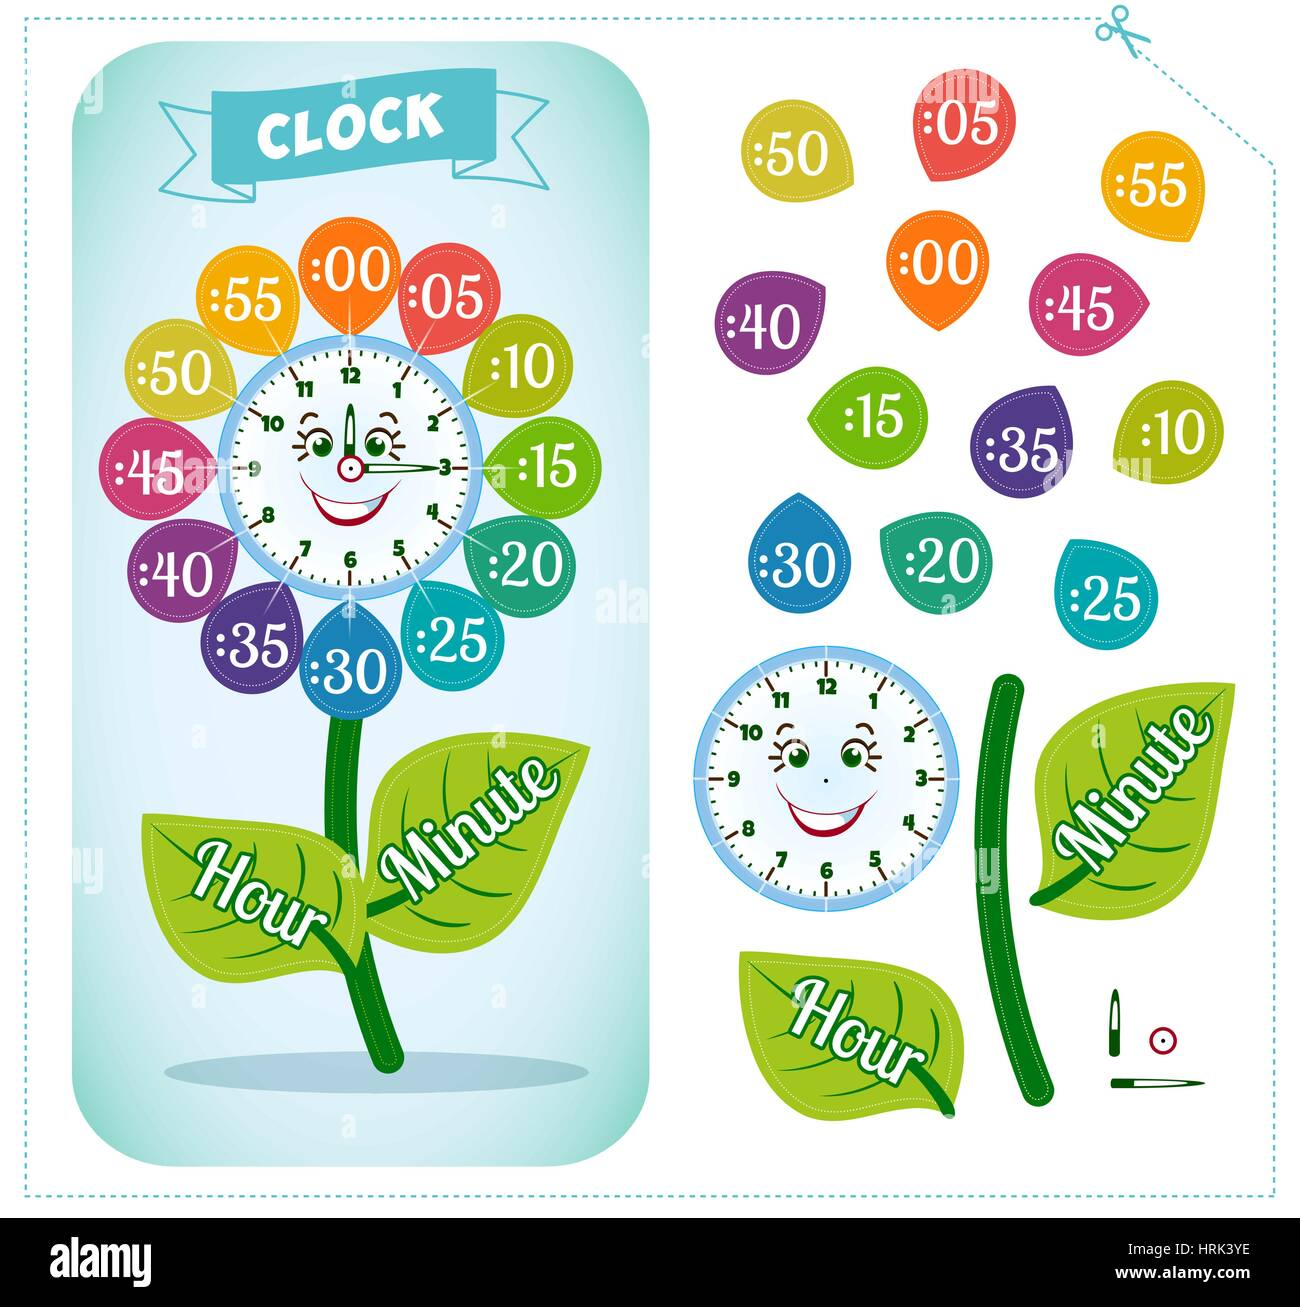 telling time worksheet for school kids to identify the time clock stock vector art. Black Bedroom Furniture Sets. Home Design Ideas